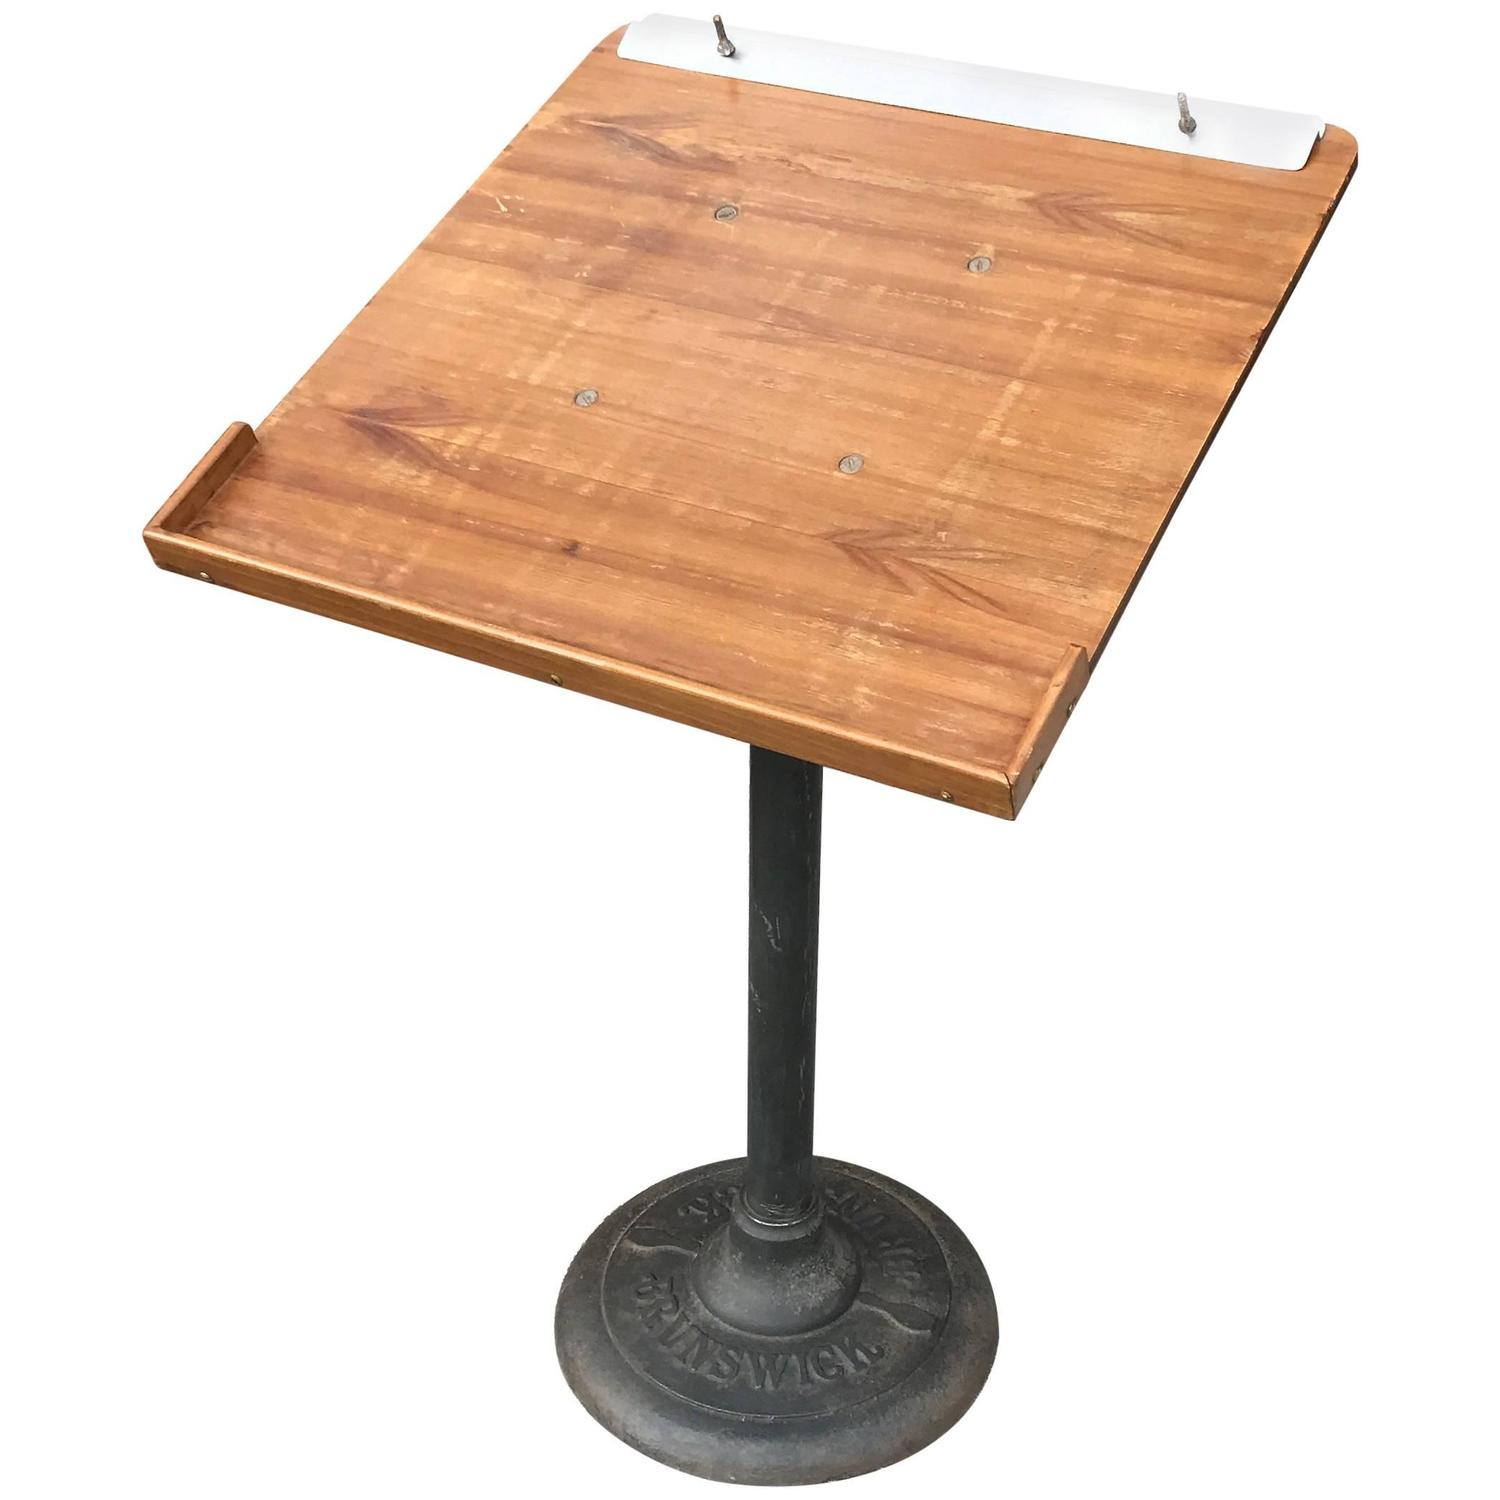 Telescopic Cast Iron and Wood Table Stand Karl Manufacturing Co